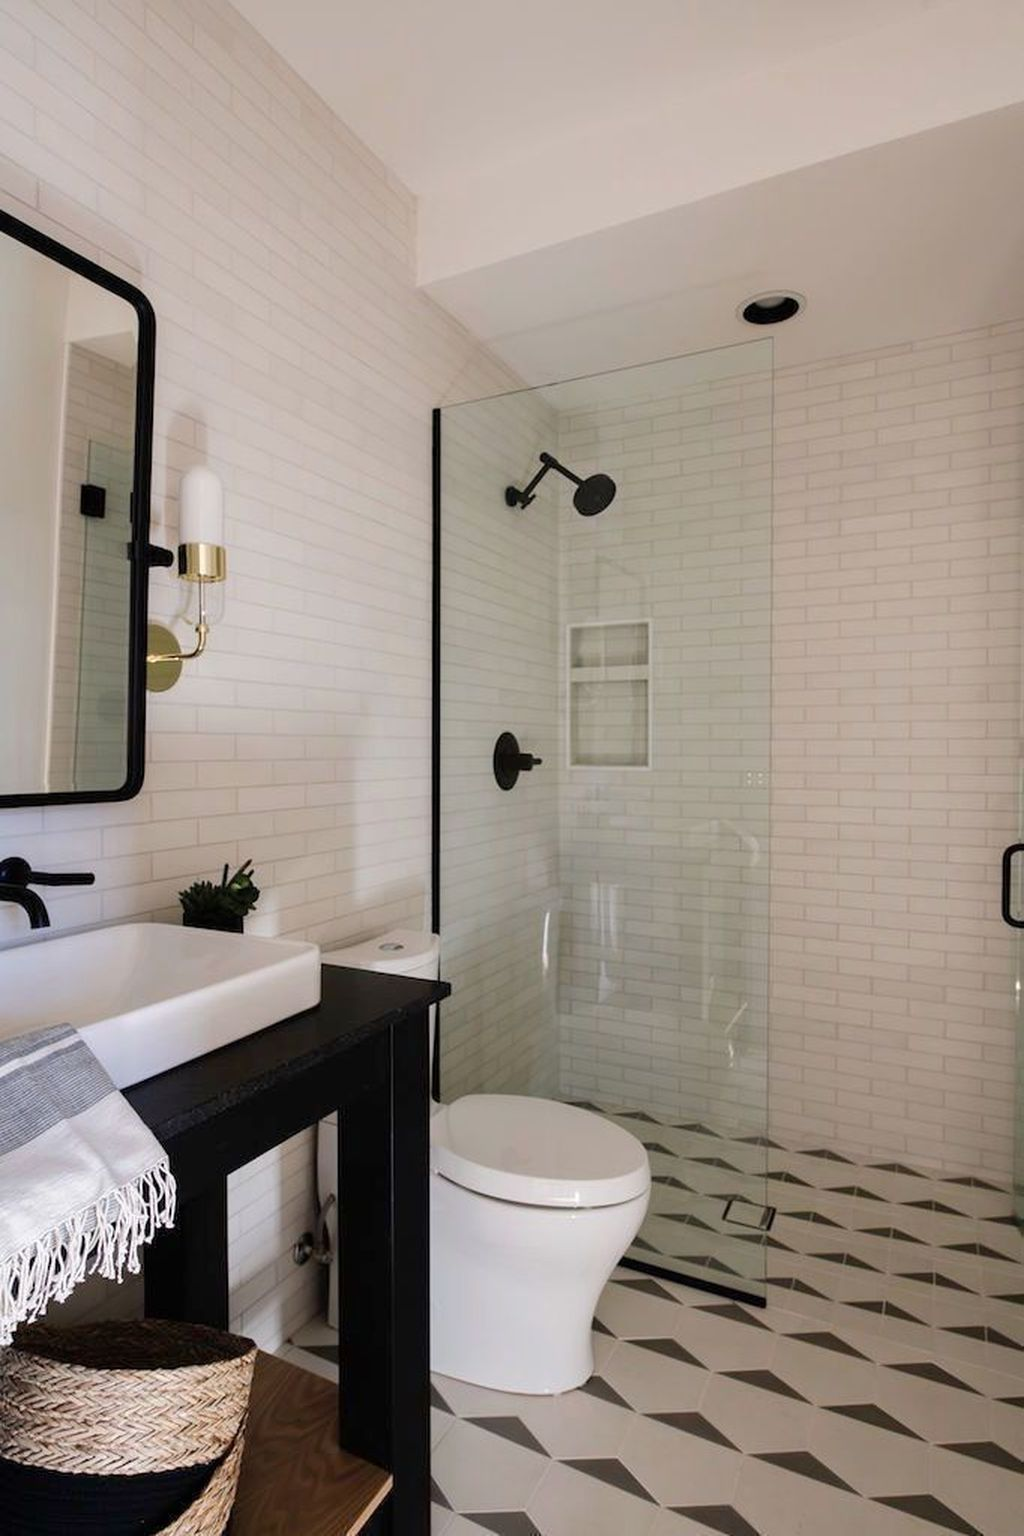 Amazing White Tile Bathroom Design Ideas Looks Elegant 01